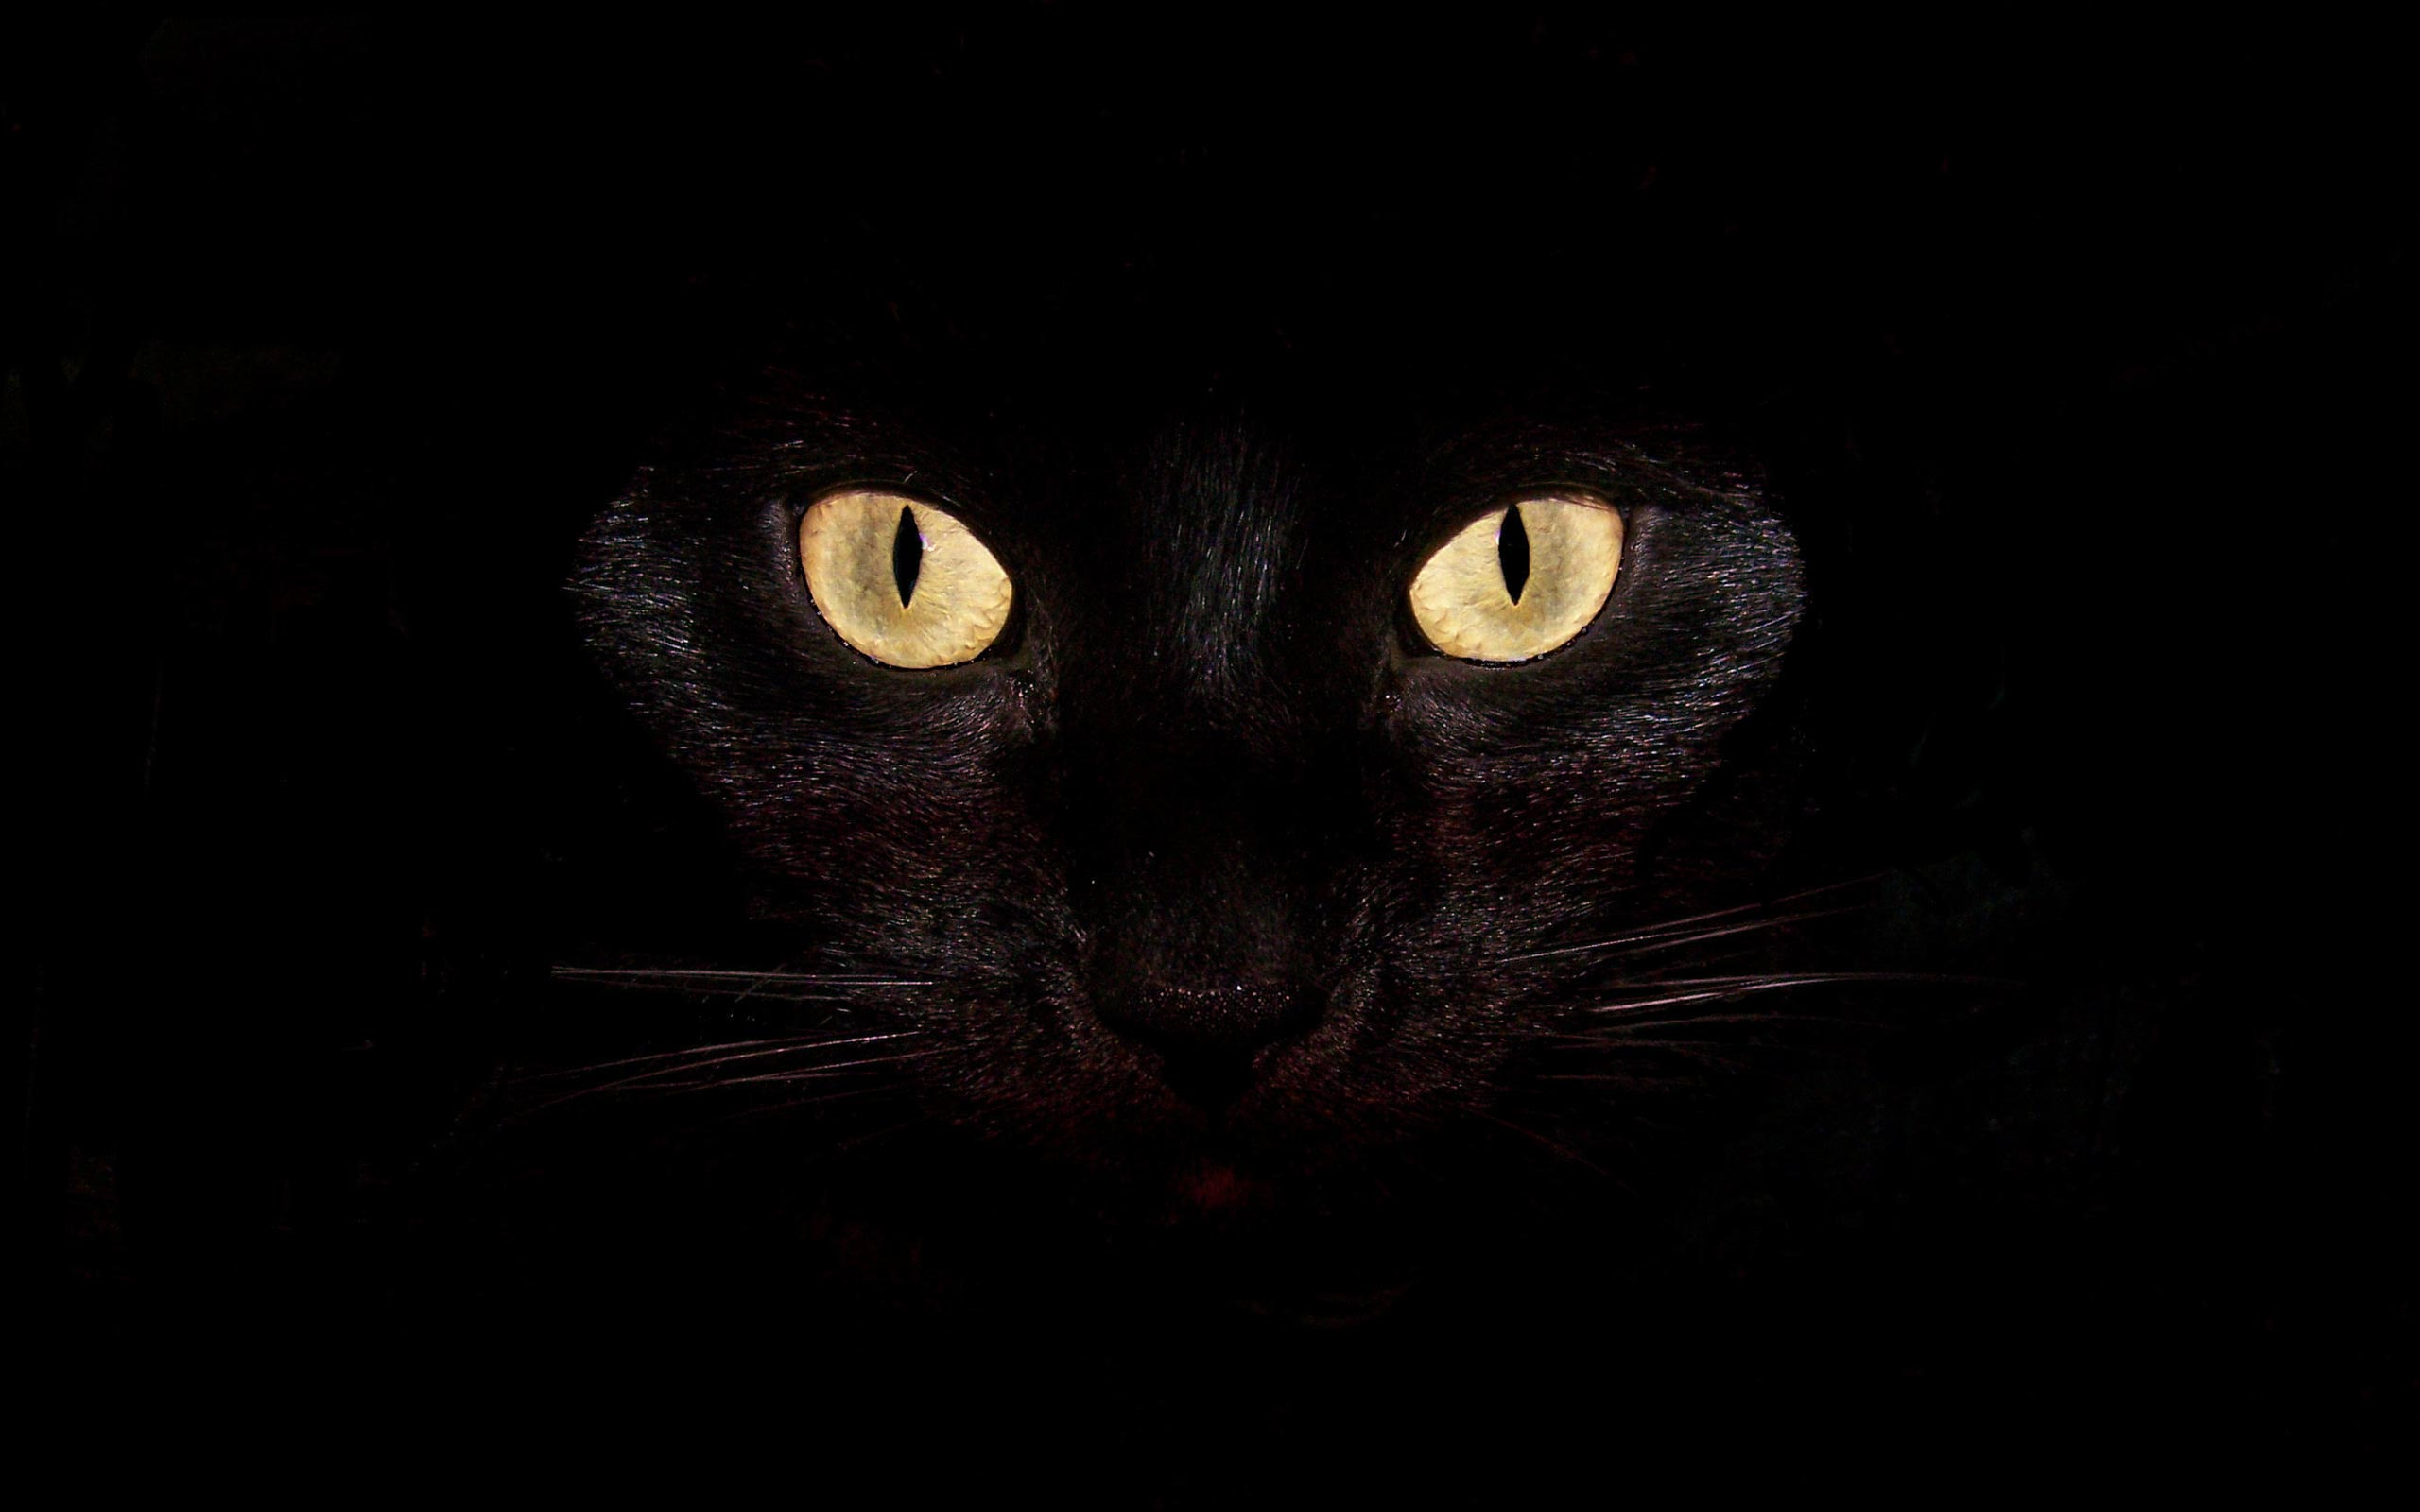 Black cat backgrounds Wallpaper and make this wallpaper for your 2560x1600